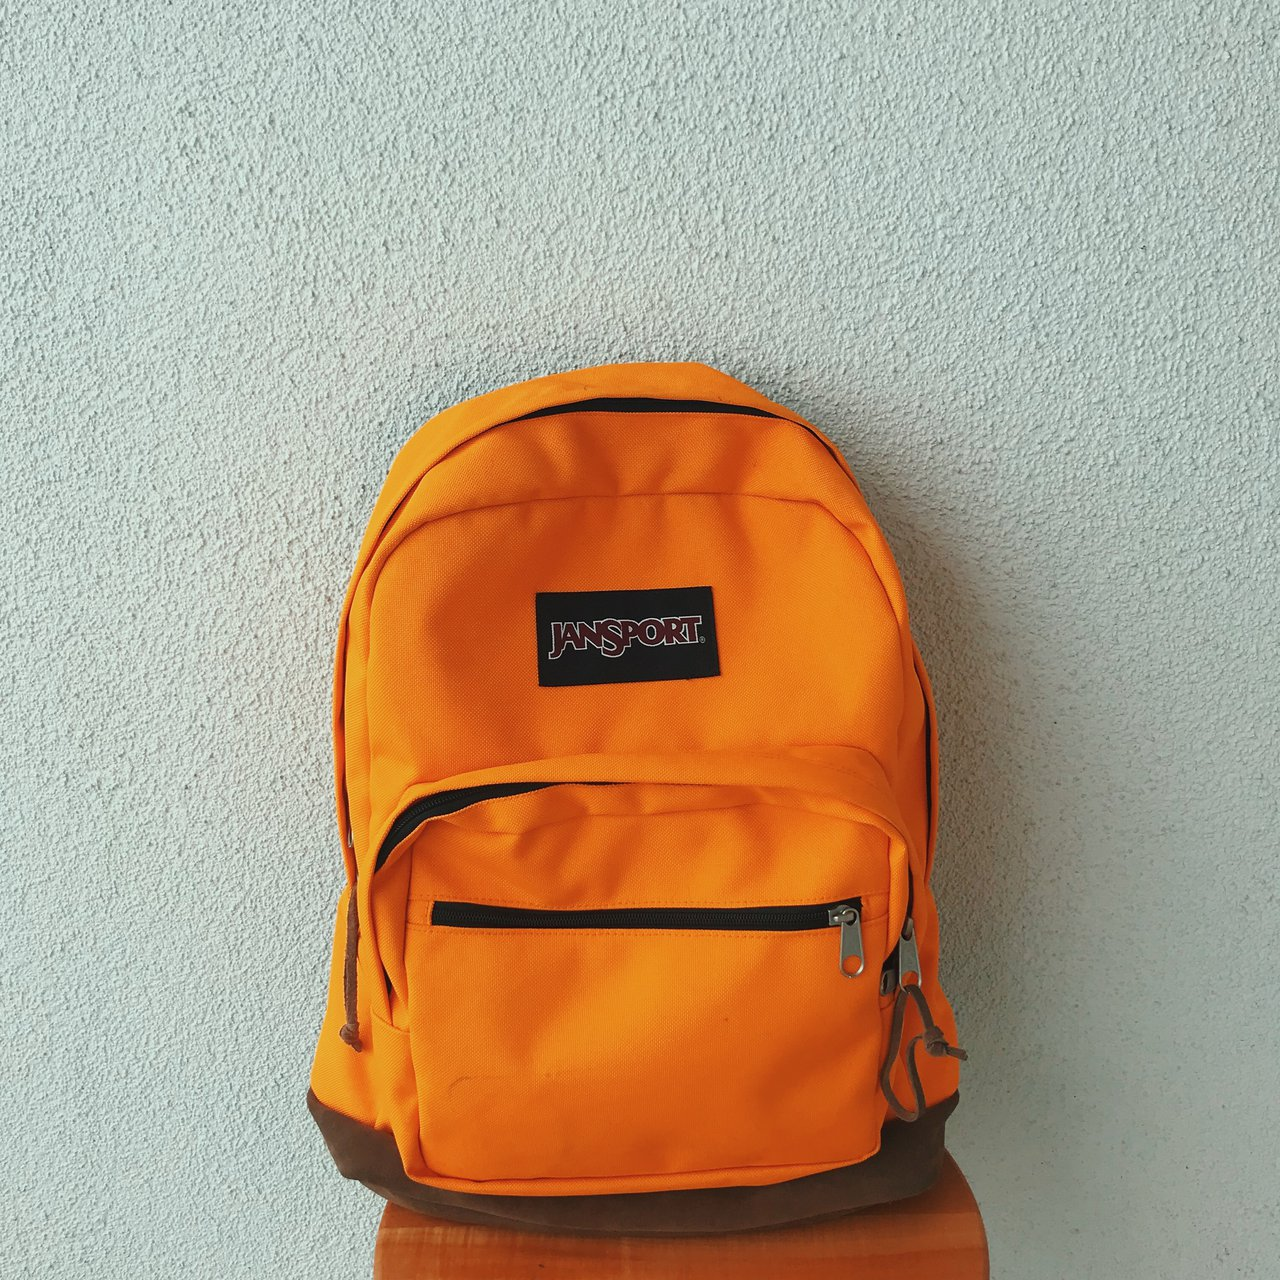 Jansport Backpack Yellow - Restaurant Grotto Ticino, Pizzeria